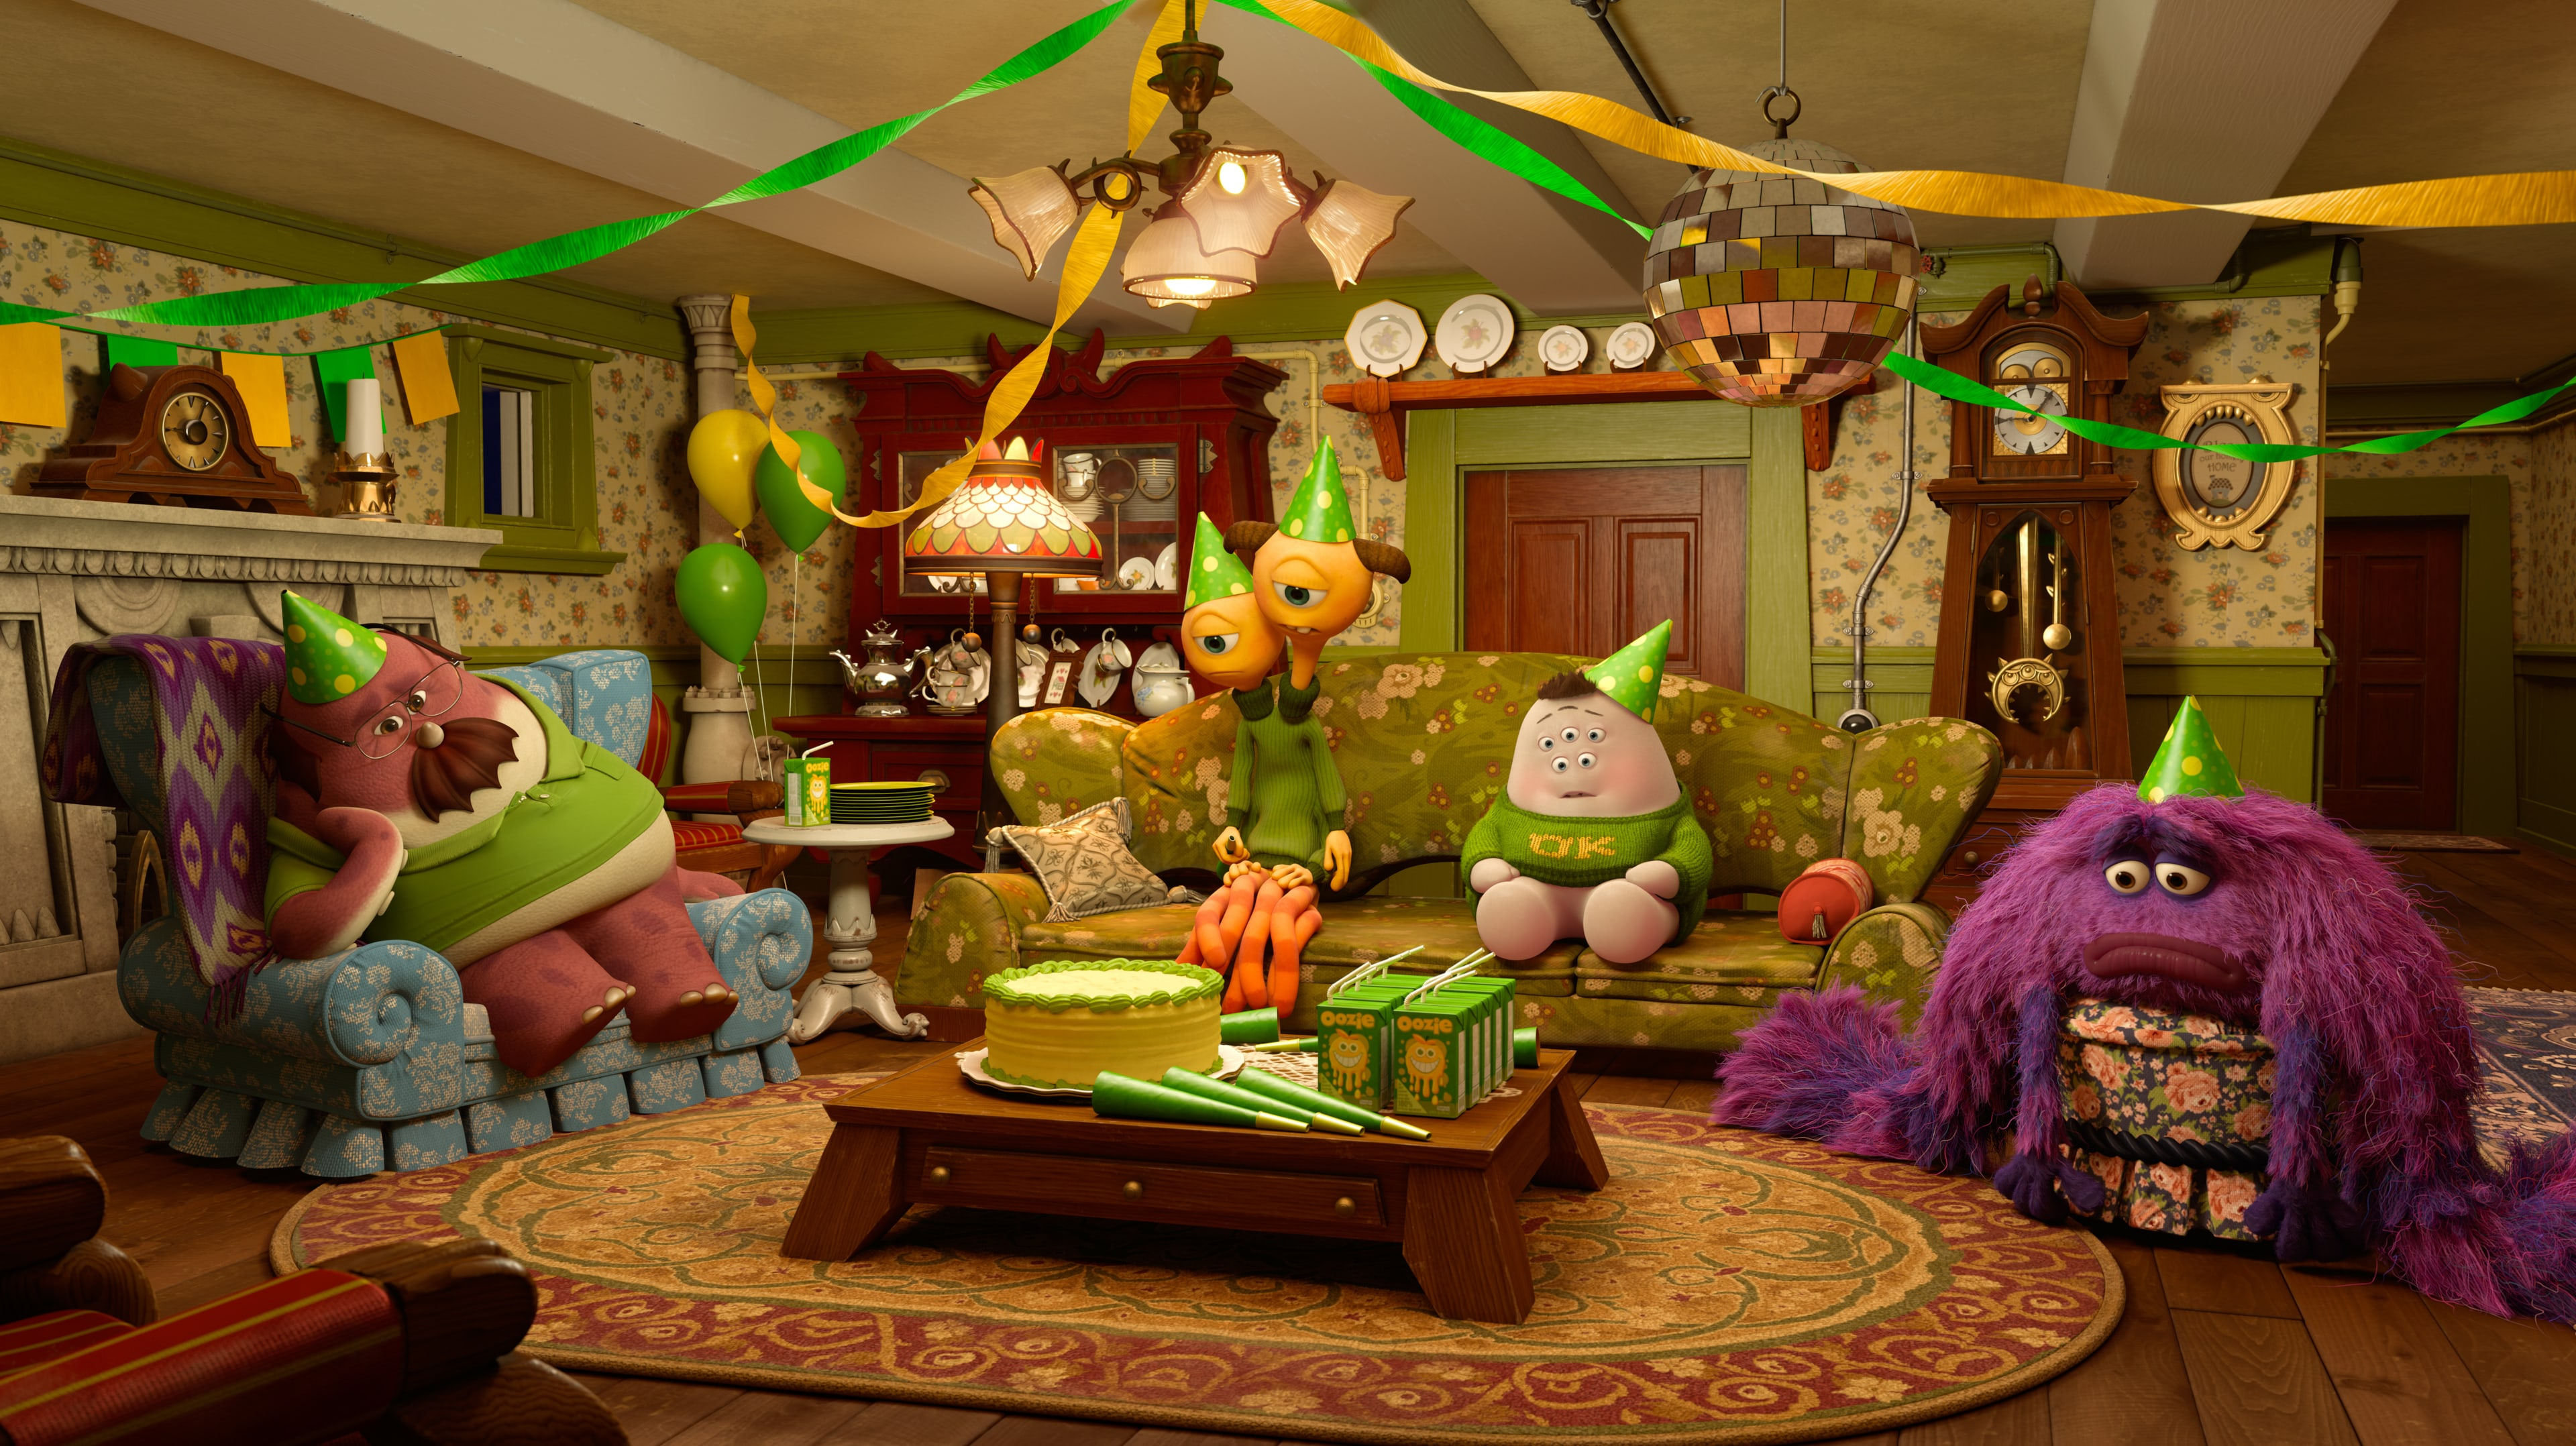 Mike (voiced by Billy Crystal), Sully (voiced by John Goodman), Terry (voiced by Dave Foley), Terri (voiced by Sean Hayes), Don (voiced by Joel Murray), and Squishy (voiced by Peter Sohn) in the Disney•Pixar movie Party Central.